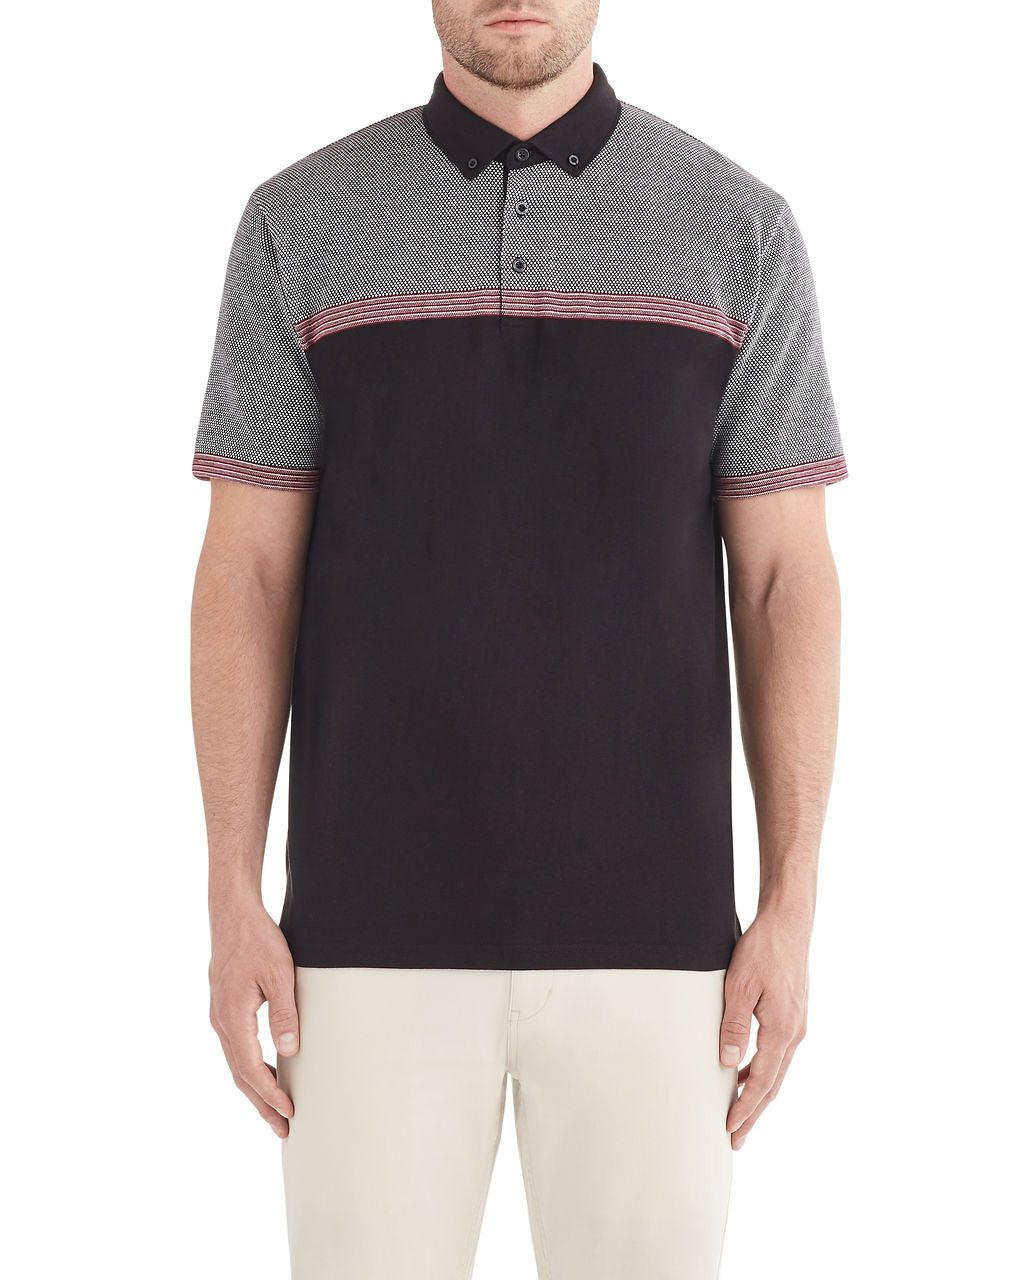 Engineered Jacquard Polo Shirt - Black